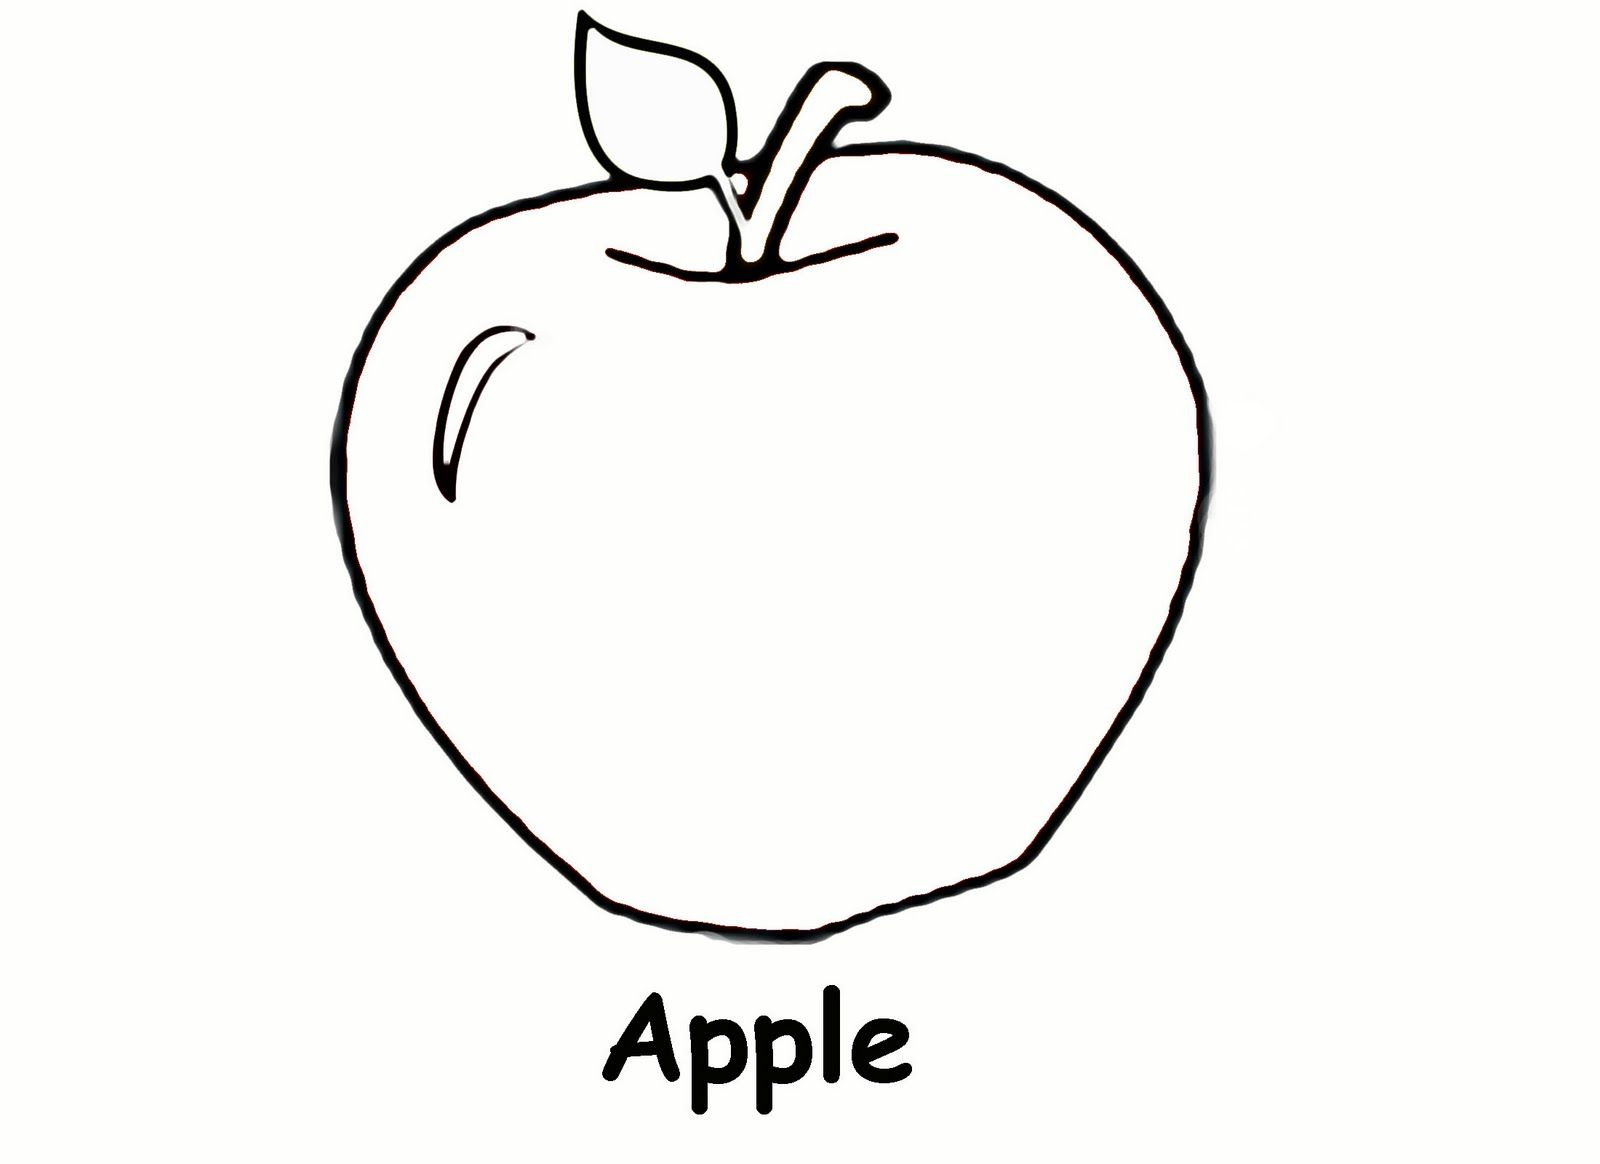 Apple Themed Coloring Pages : Free coloring book pages printable apple